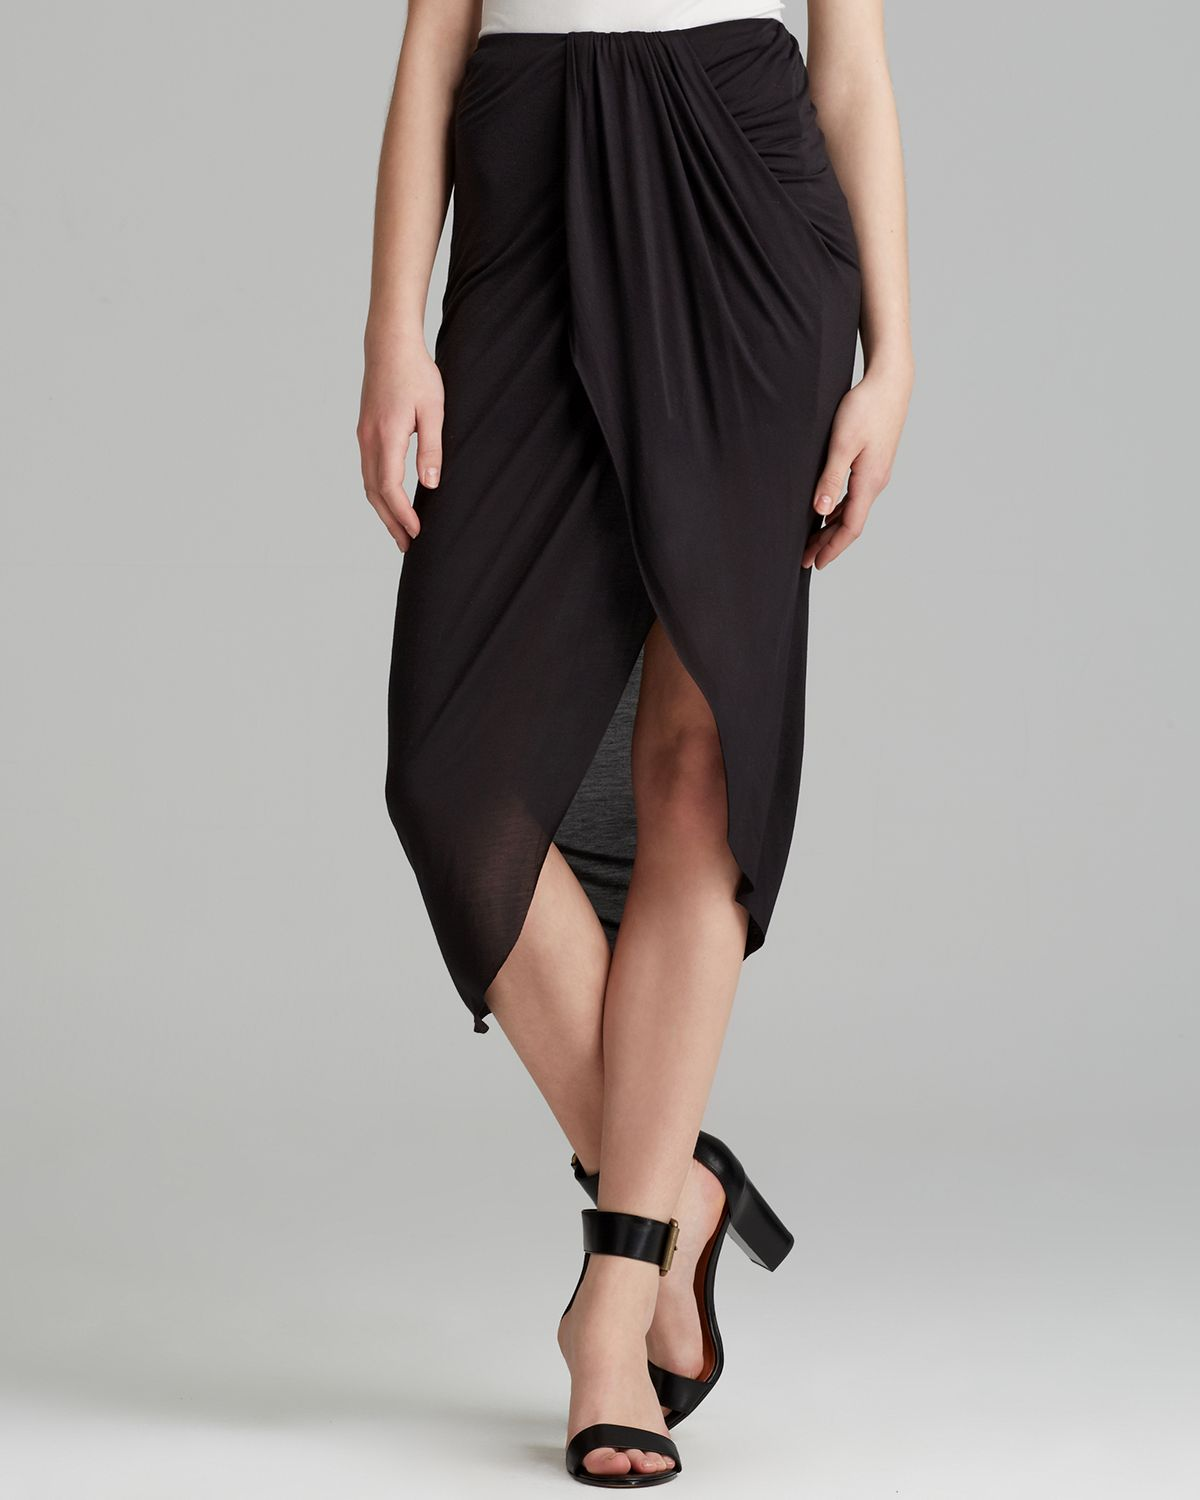 Bella Luxx Skirt - Cross Front | Bloomingdale's